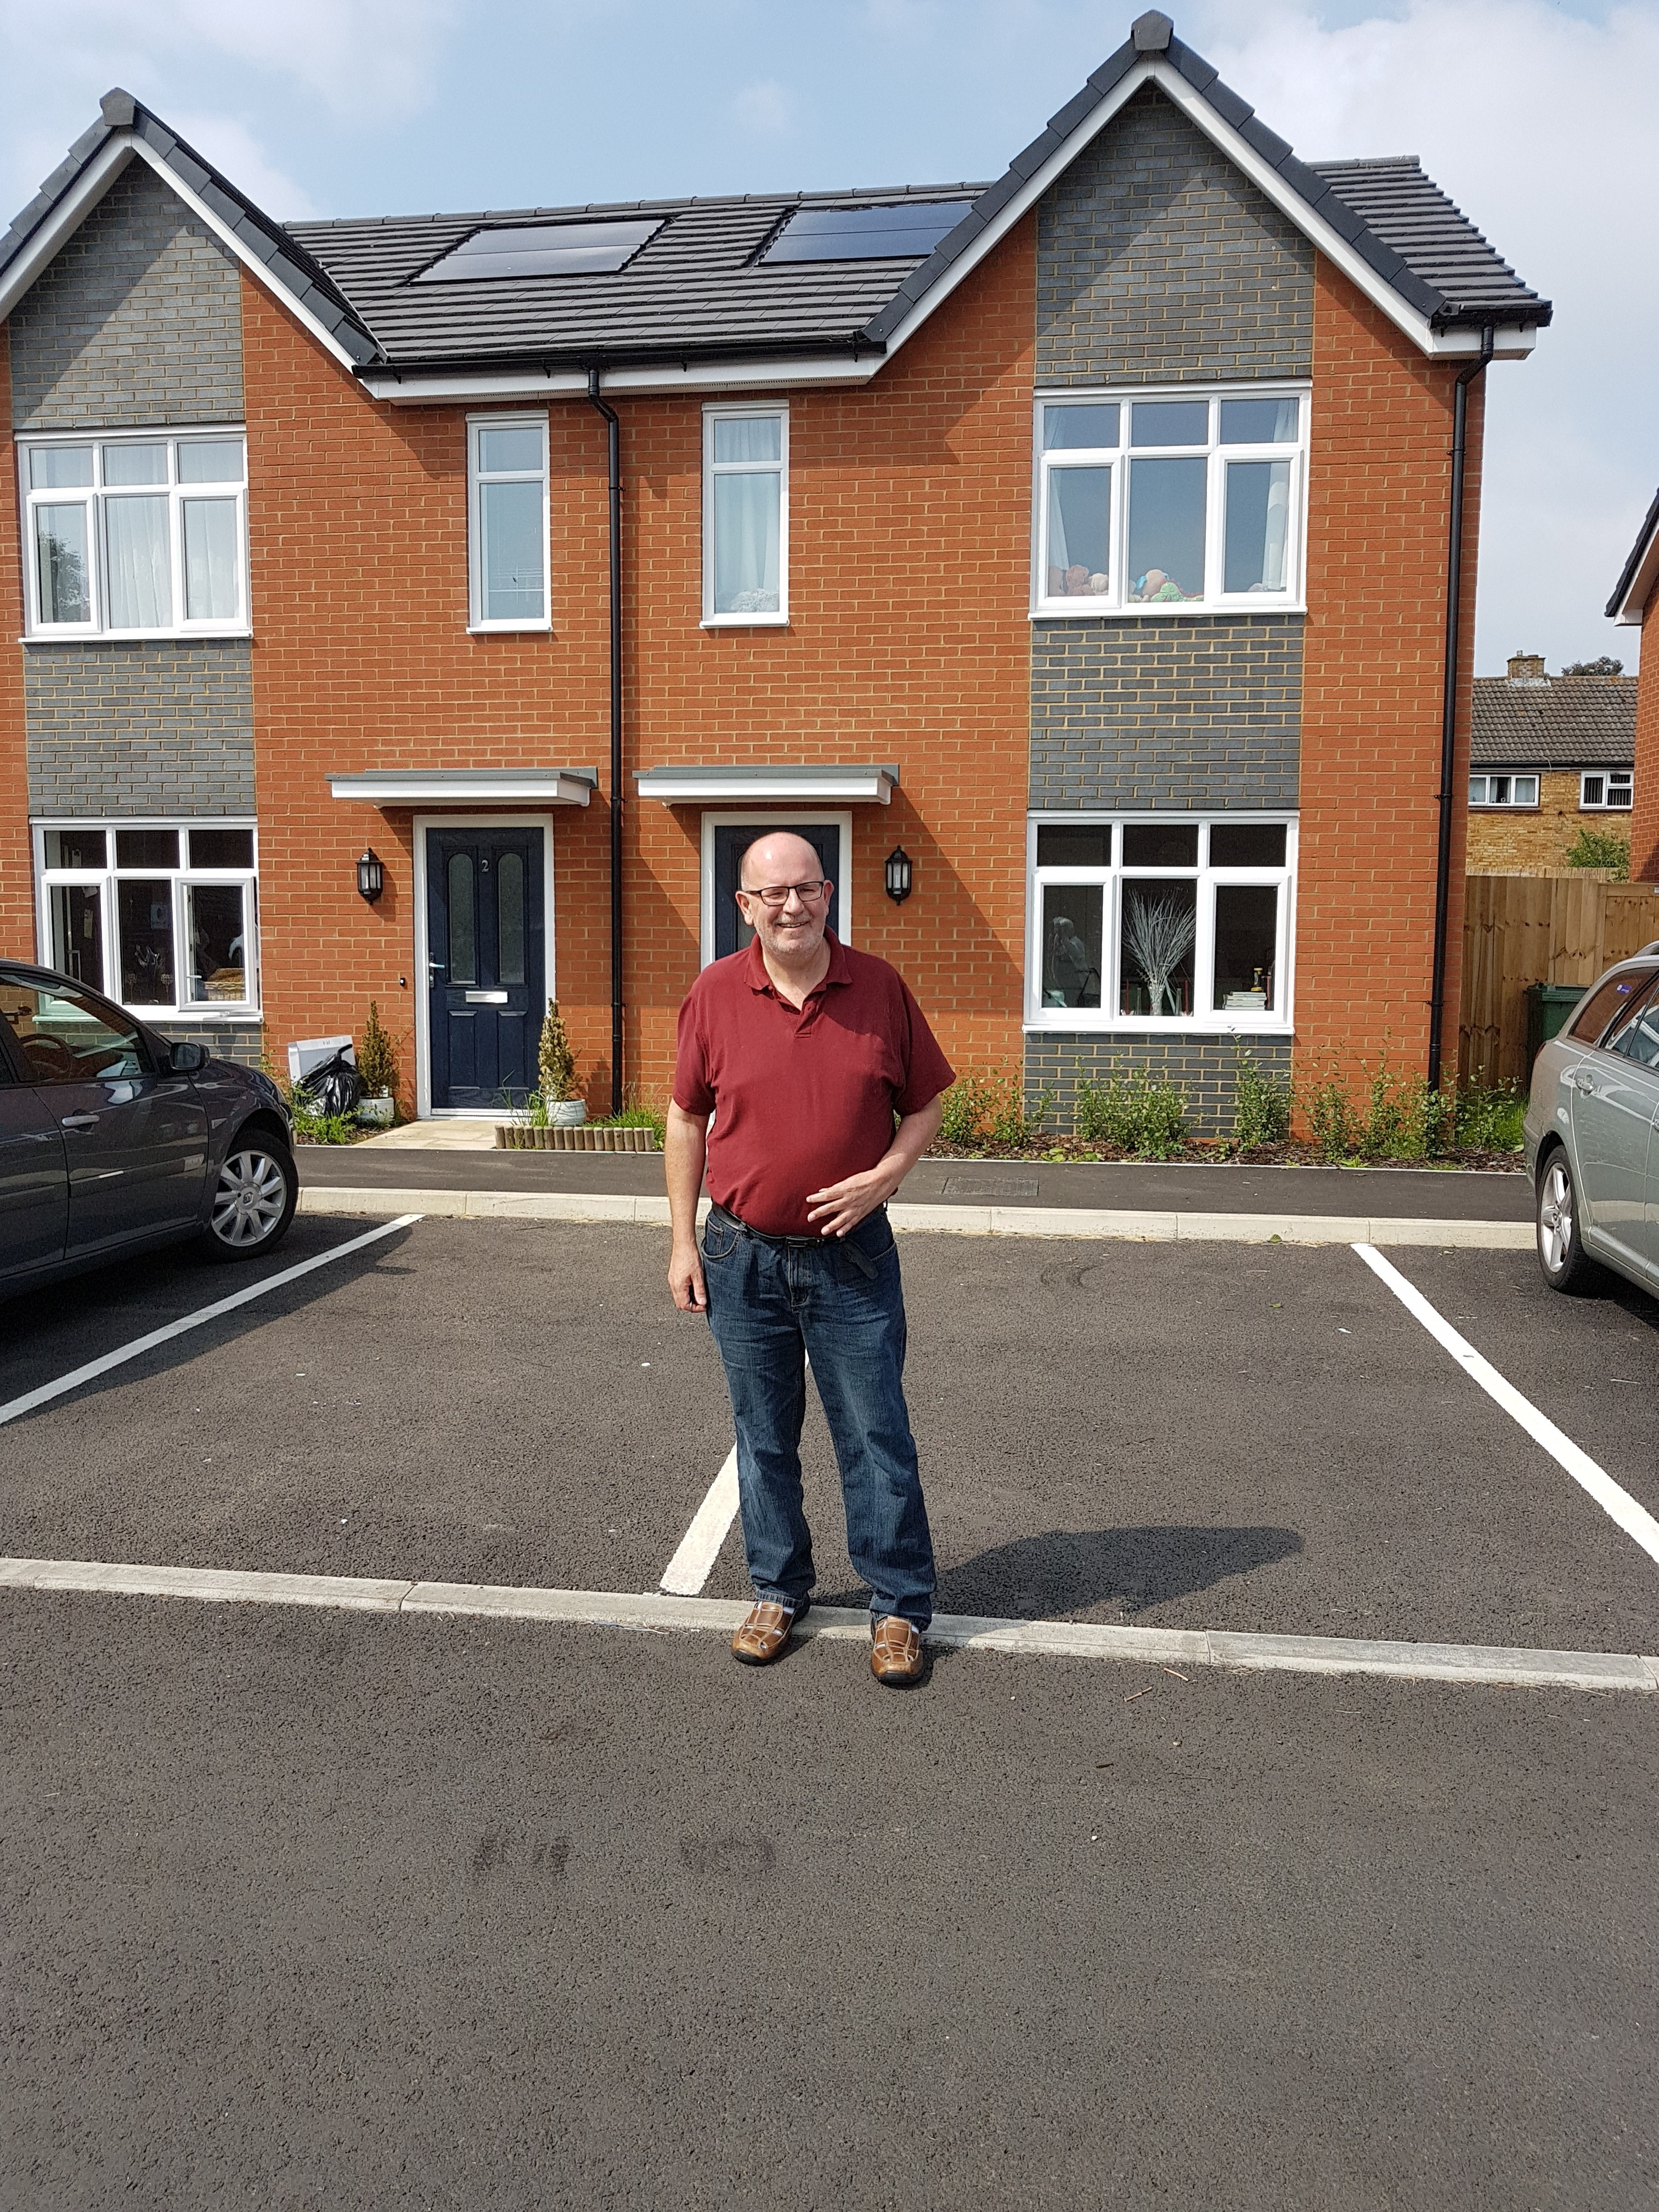 Cllr_Long_ous_tside_newly_opened_council_houses_off_of_Whaddon_Way__Bletchley.jpg